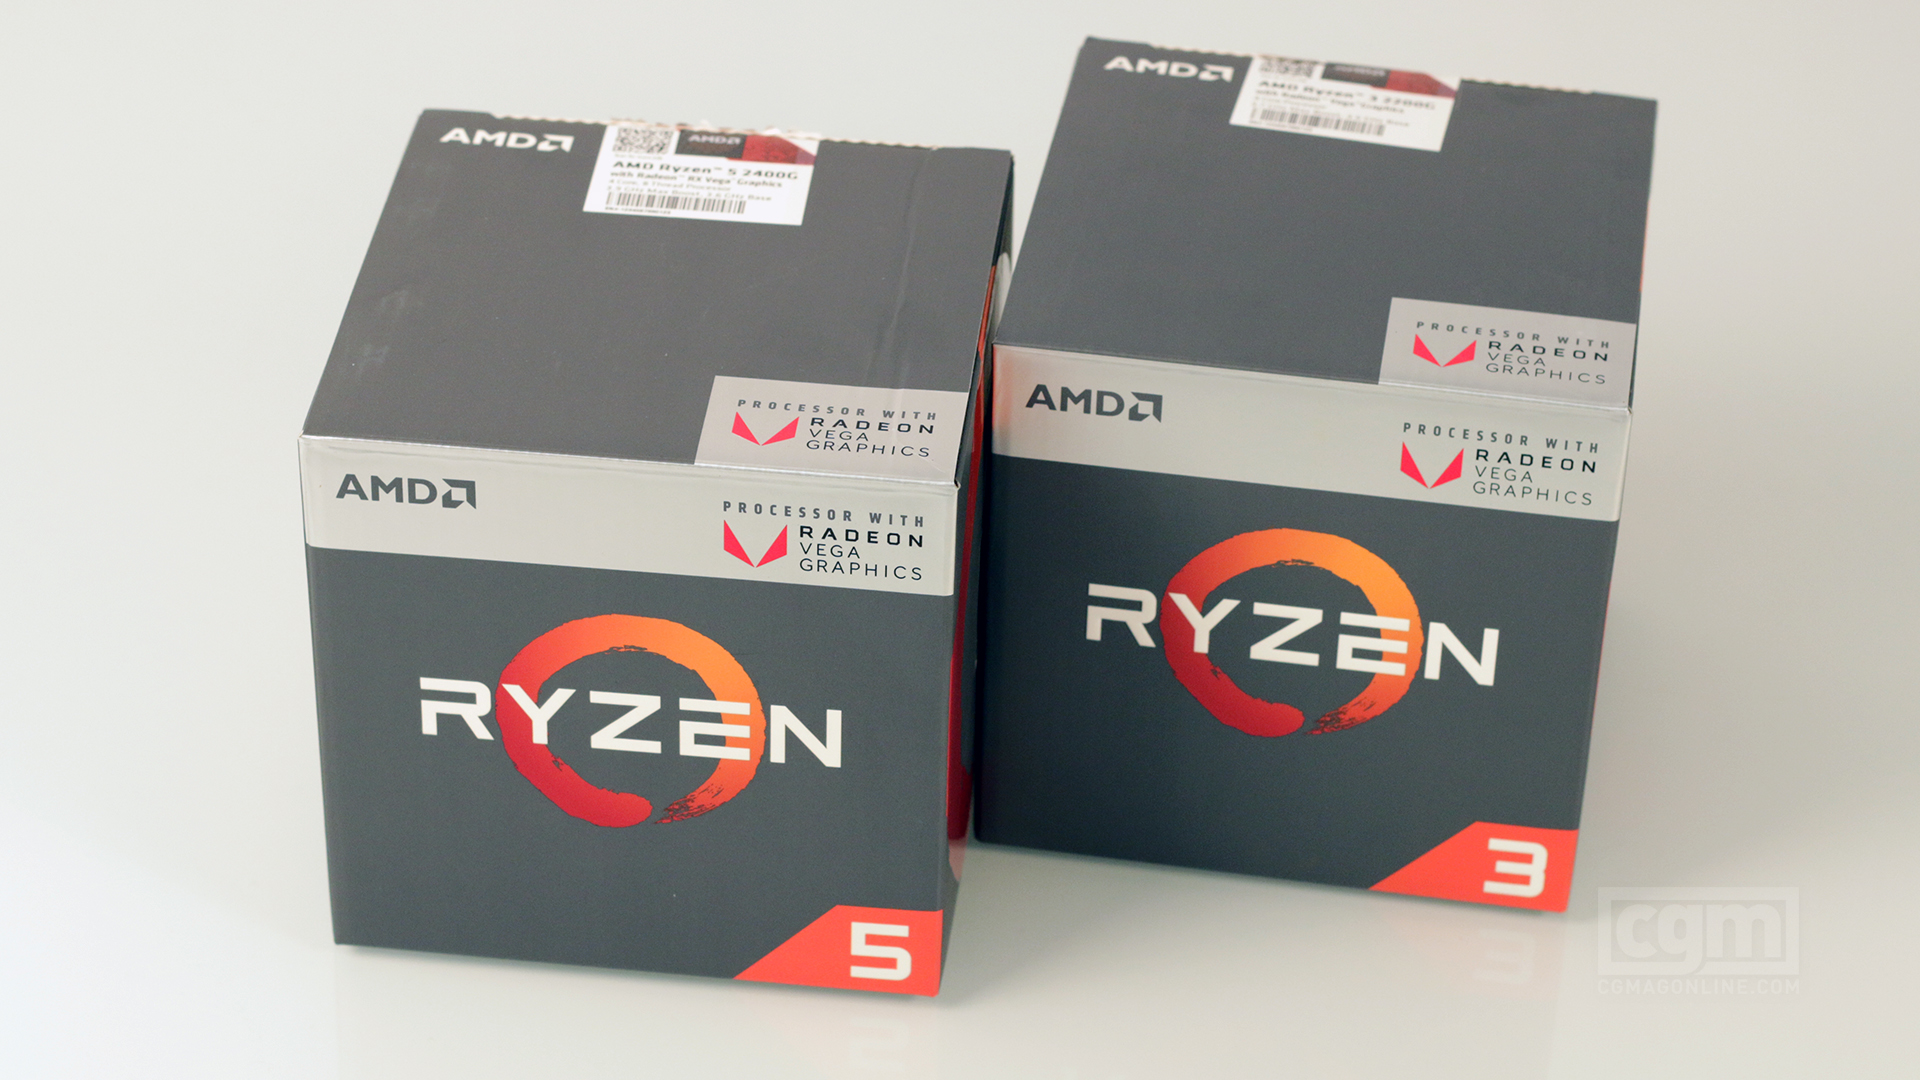 Amd Ryzen 2400g And 2200g Review True Budget 1080p Performance 5 With Radeon Rx Vega 11 Graphics